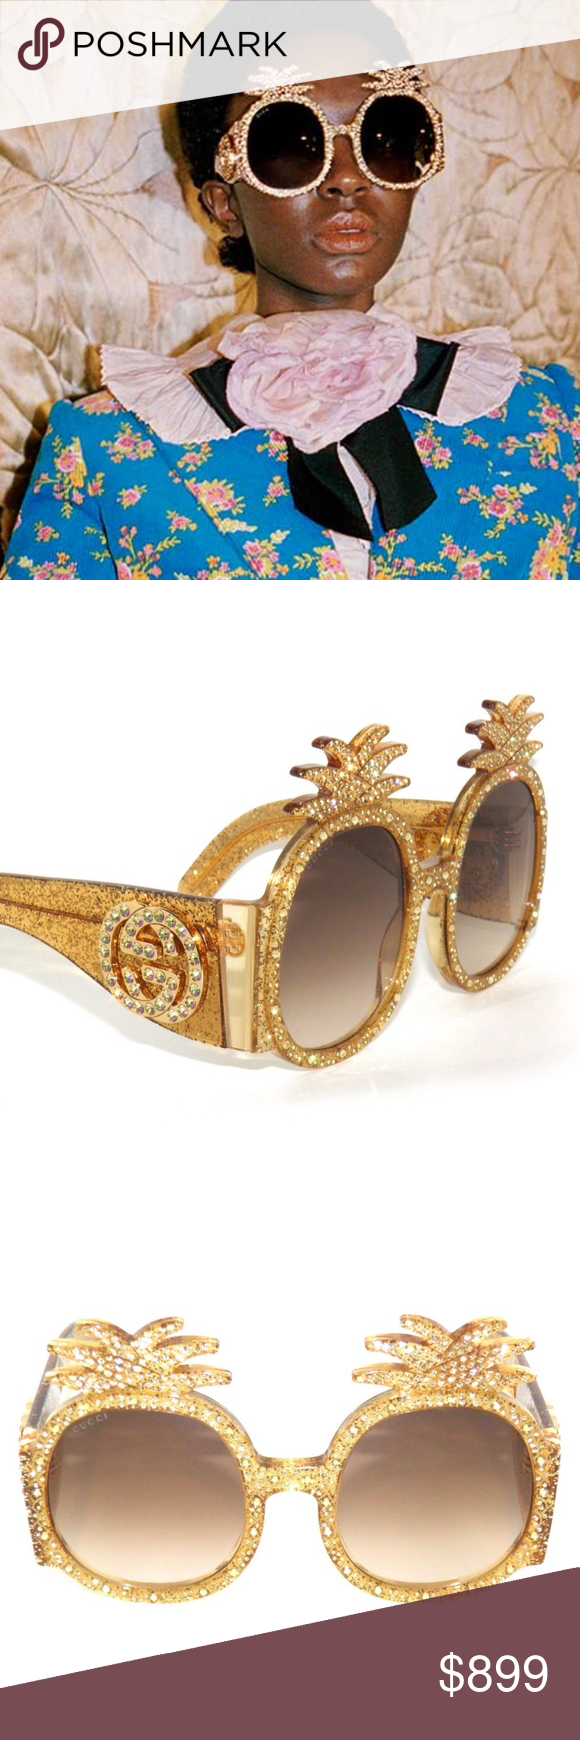 0221f415da579 GUCCI GG0150S PINEAPPLE CRYSTALS GOLD SUNGLASSES GUCCI GG0150S PINEAPPLE  CRYSTALS GOLD BROWN 001 SunglaSSeS AUTHENTIC AND BRAND NEW IN ORIGINAL  PACKAGING ...